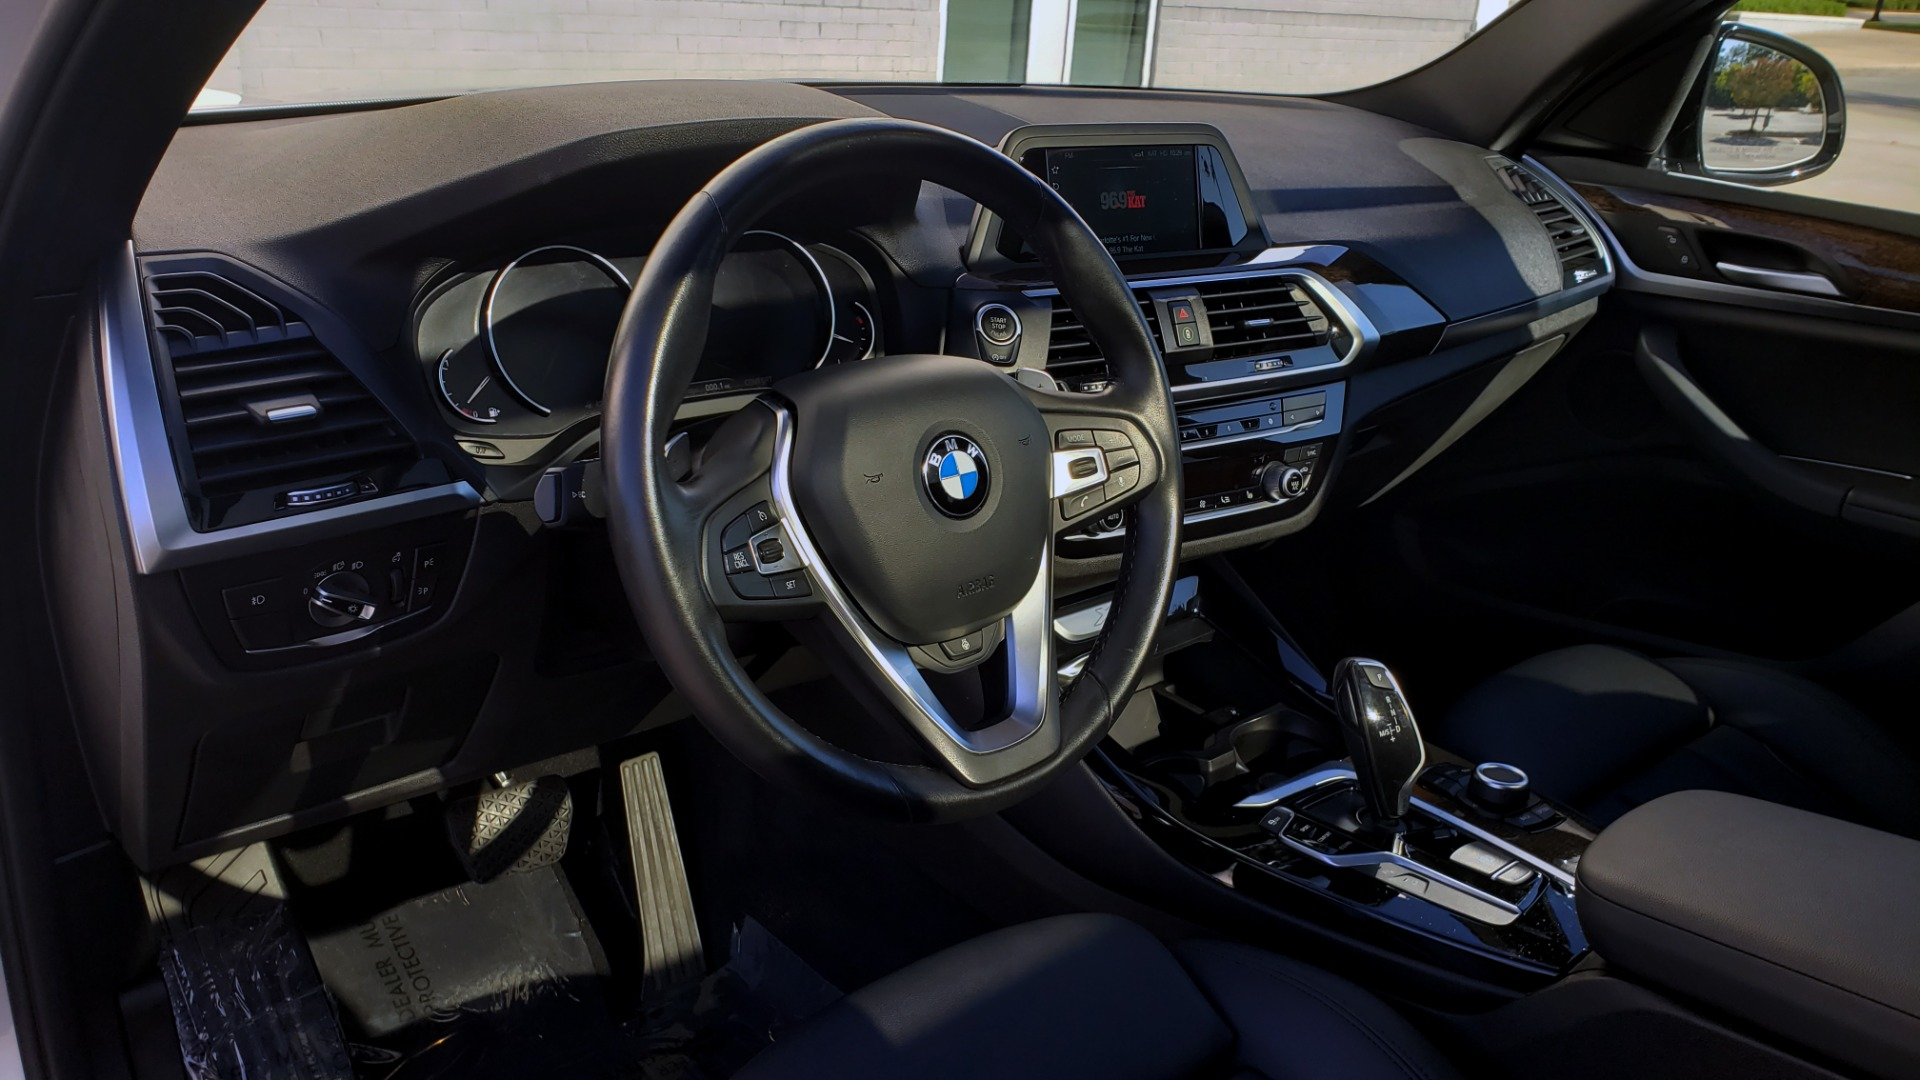 Used 2019 BMW X3 XDRIVE30I / DRVR ASST / PANO-ROOF / HTD STS / REARVIEW for sale $41,995 at Formula Imports in Charlotte NC 28227 42